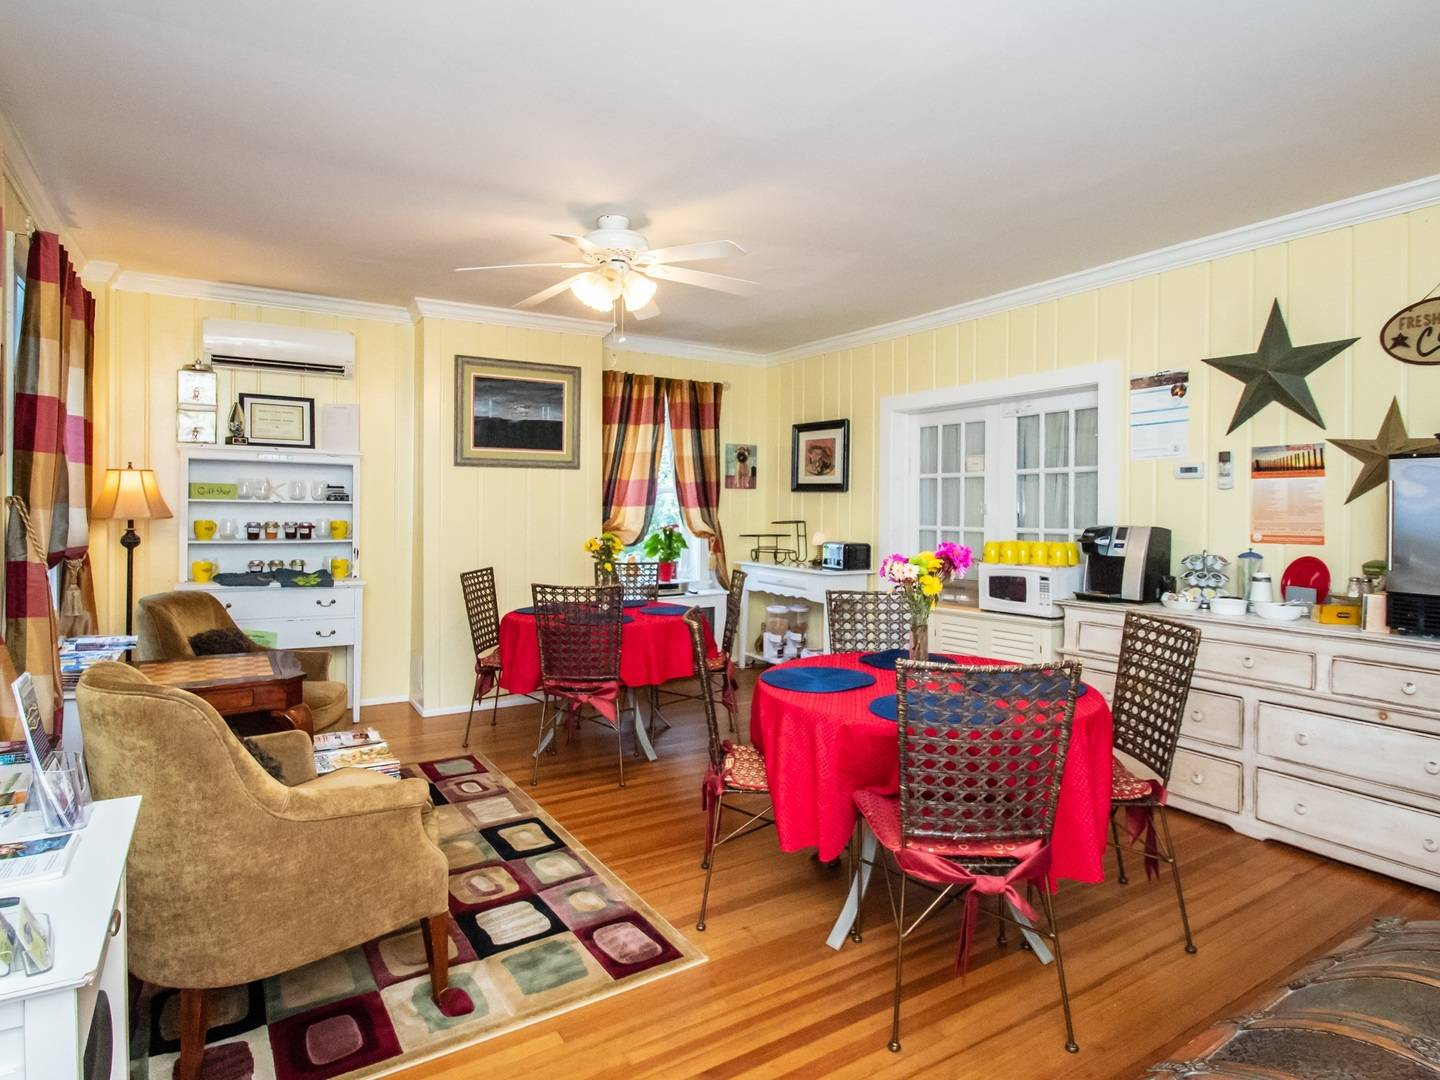 Rehoboth Beach Bed and Breakfast